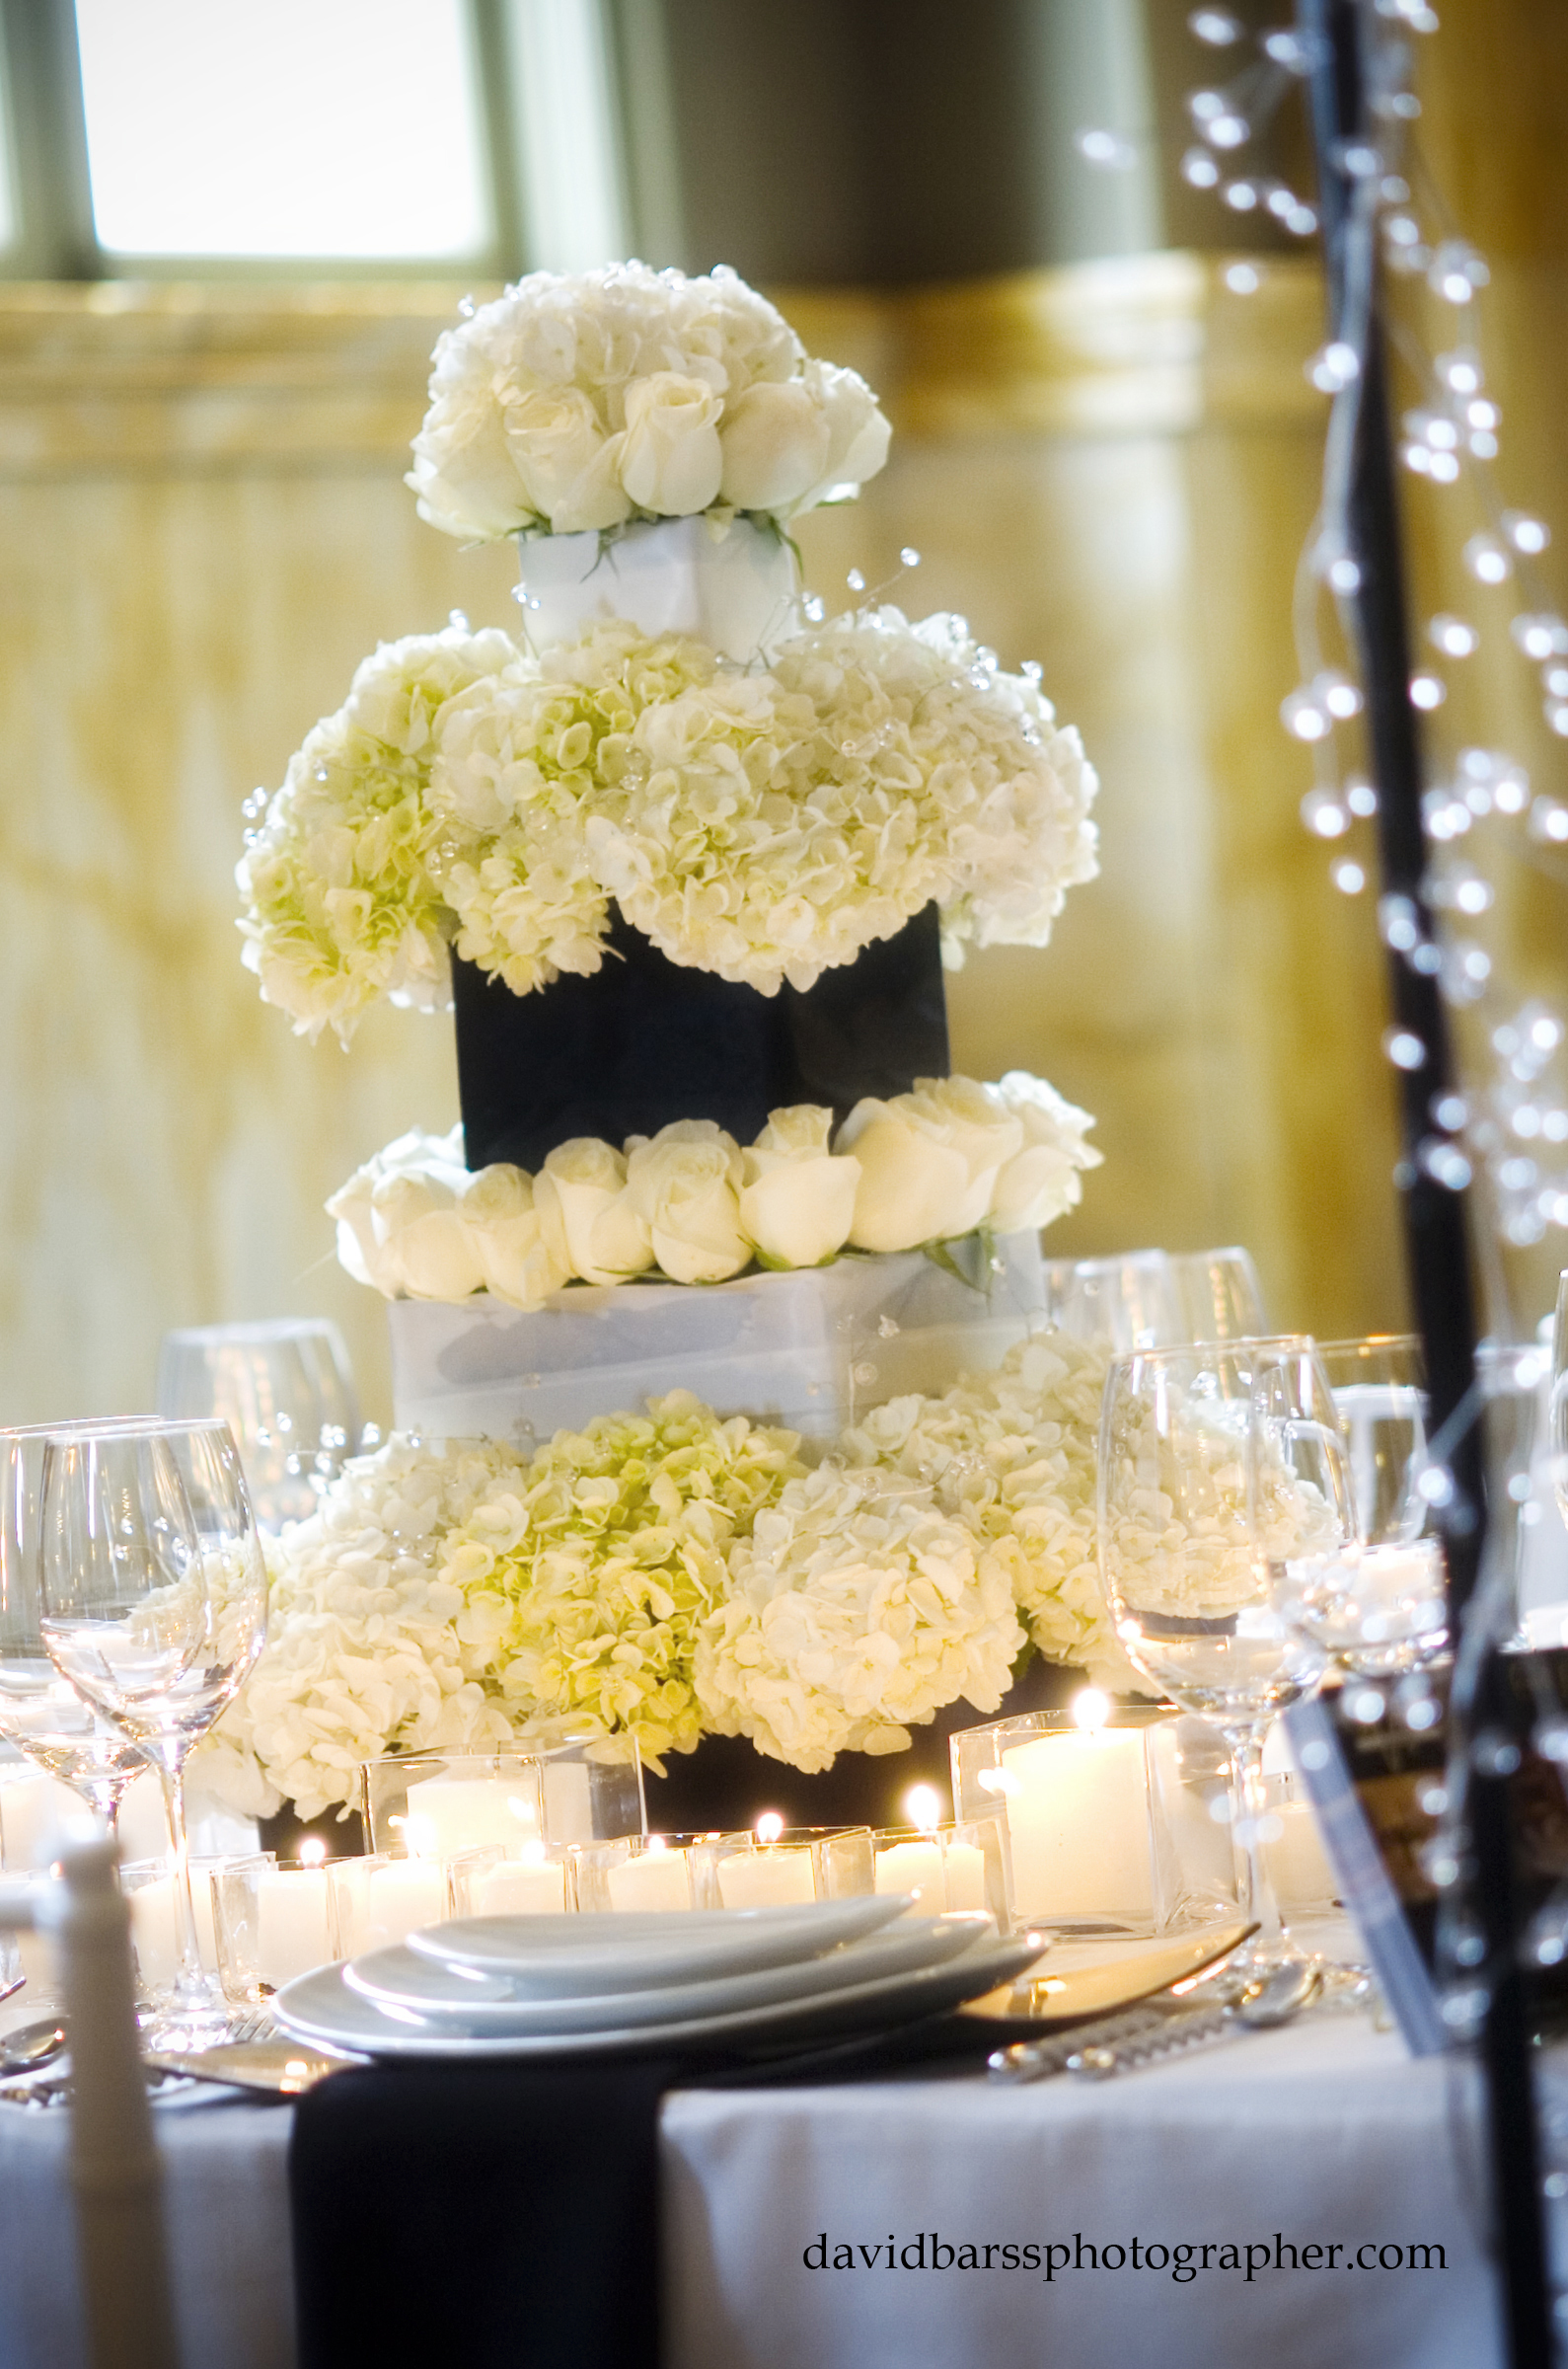 Reception, Flowers & Decor, Cakes, white, black, cake, Centerpieces, Centerpiece, Table, inc, West coast event productions